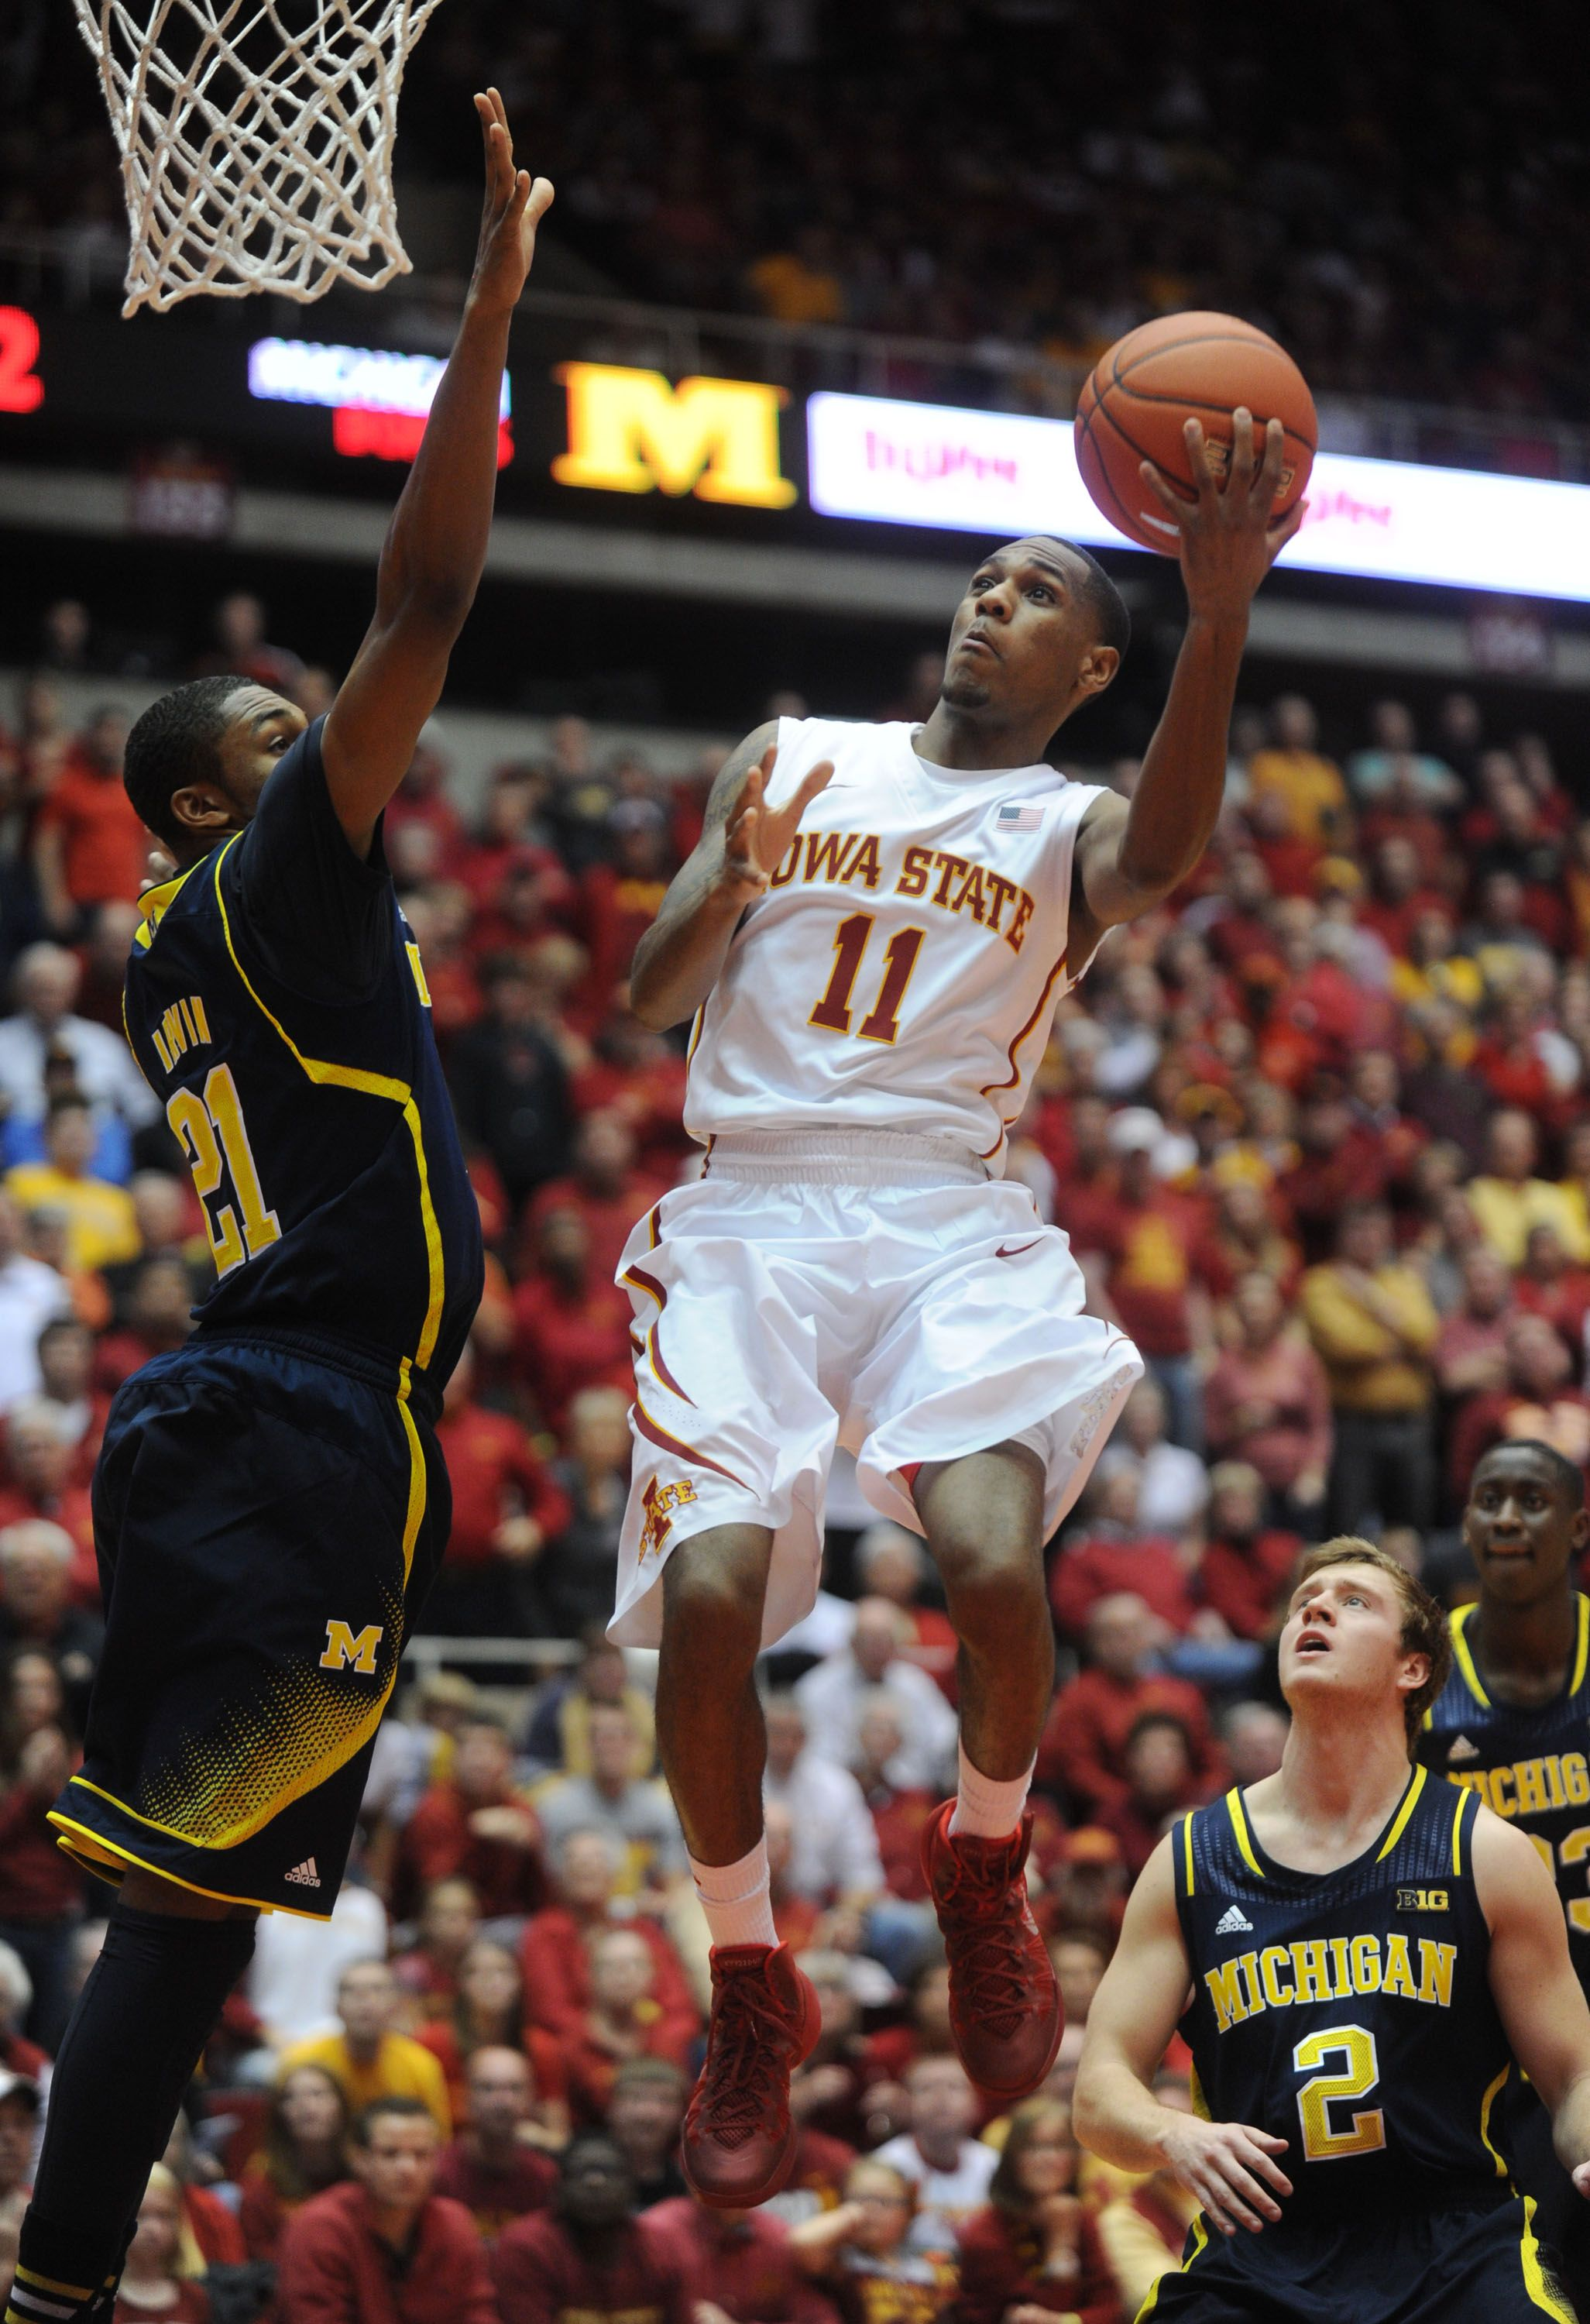 Iowa states monte morris lays up the ball over michigans